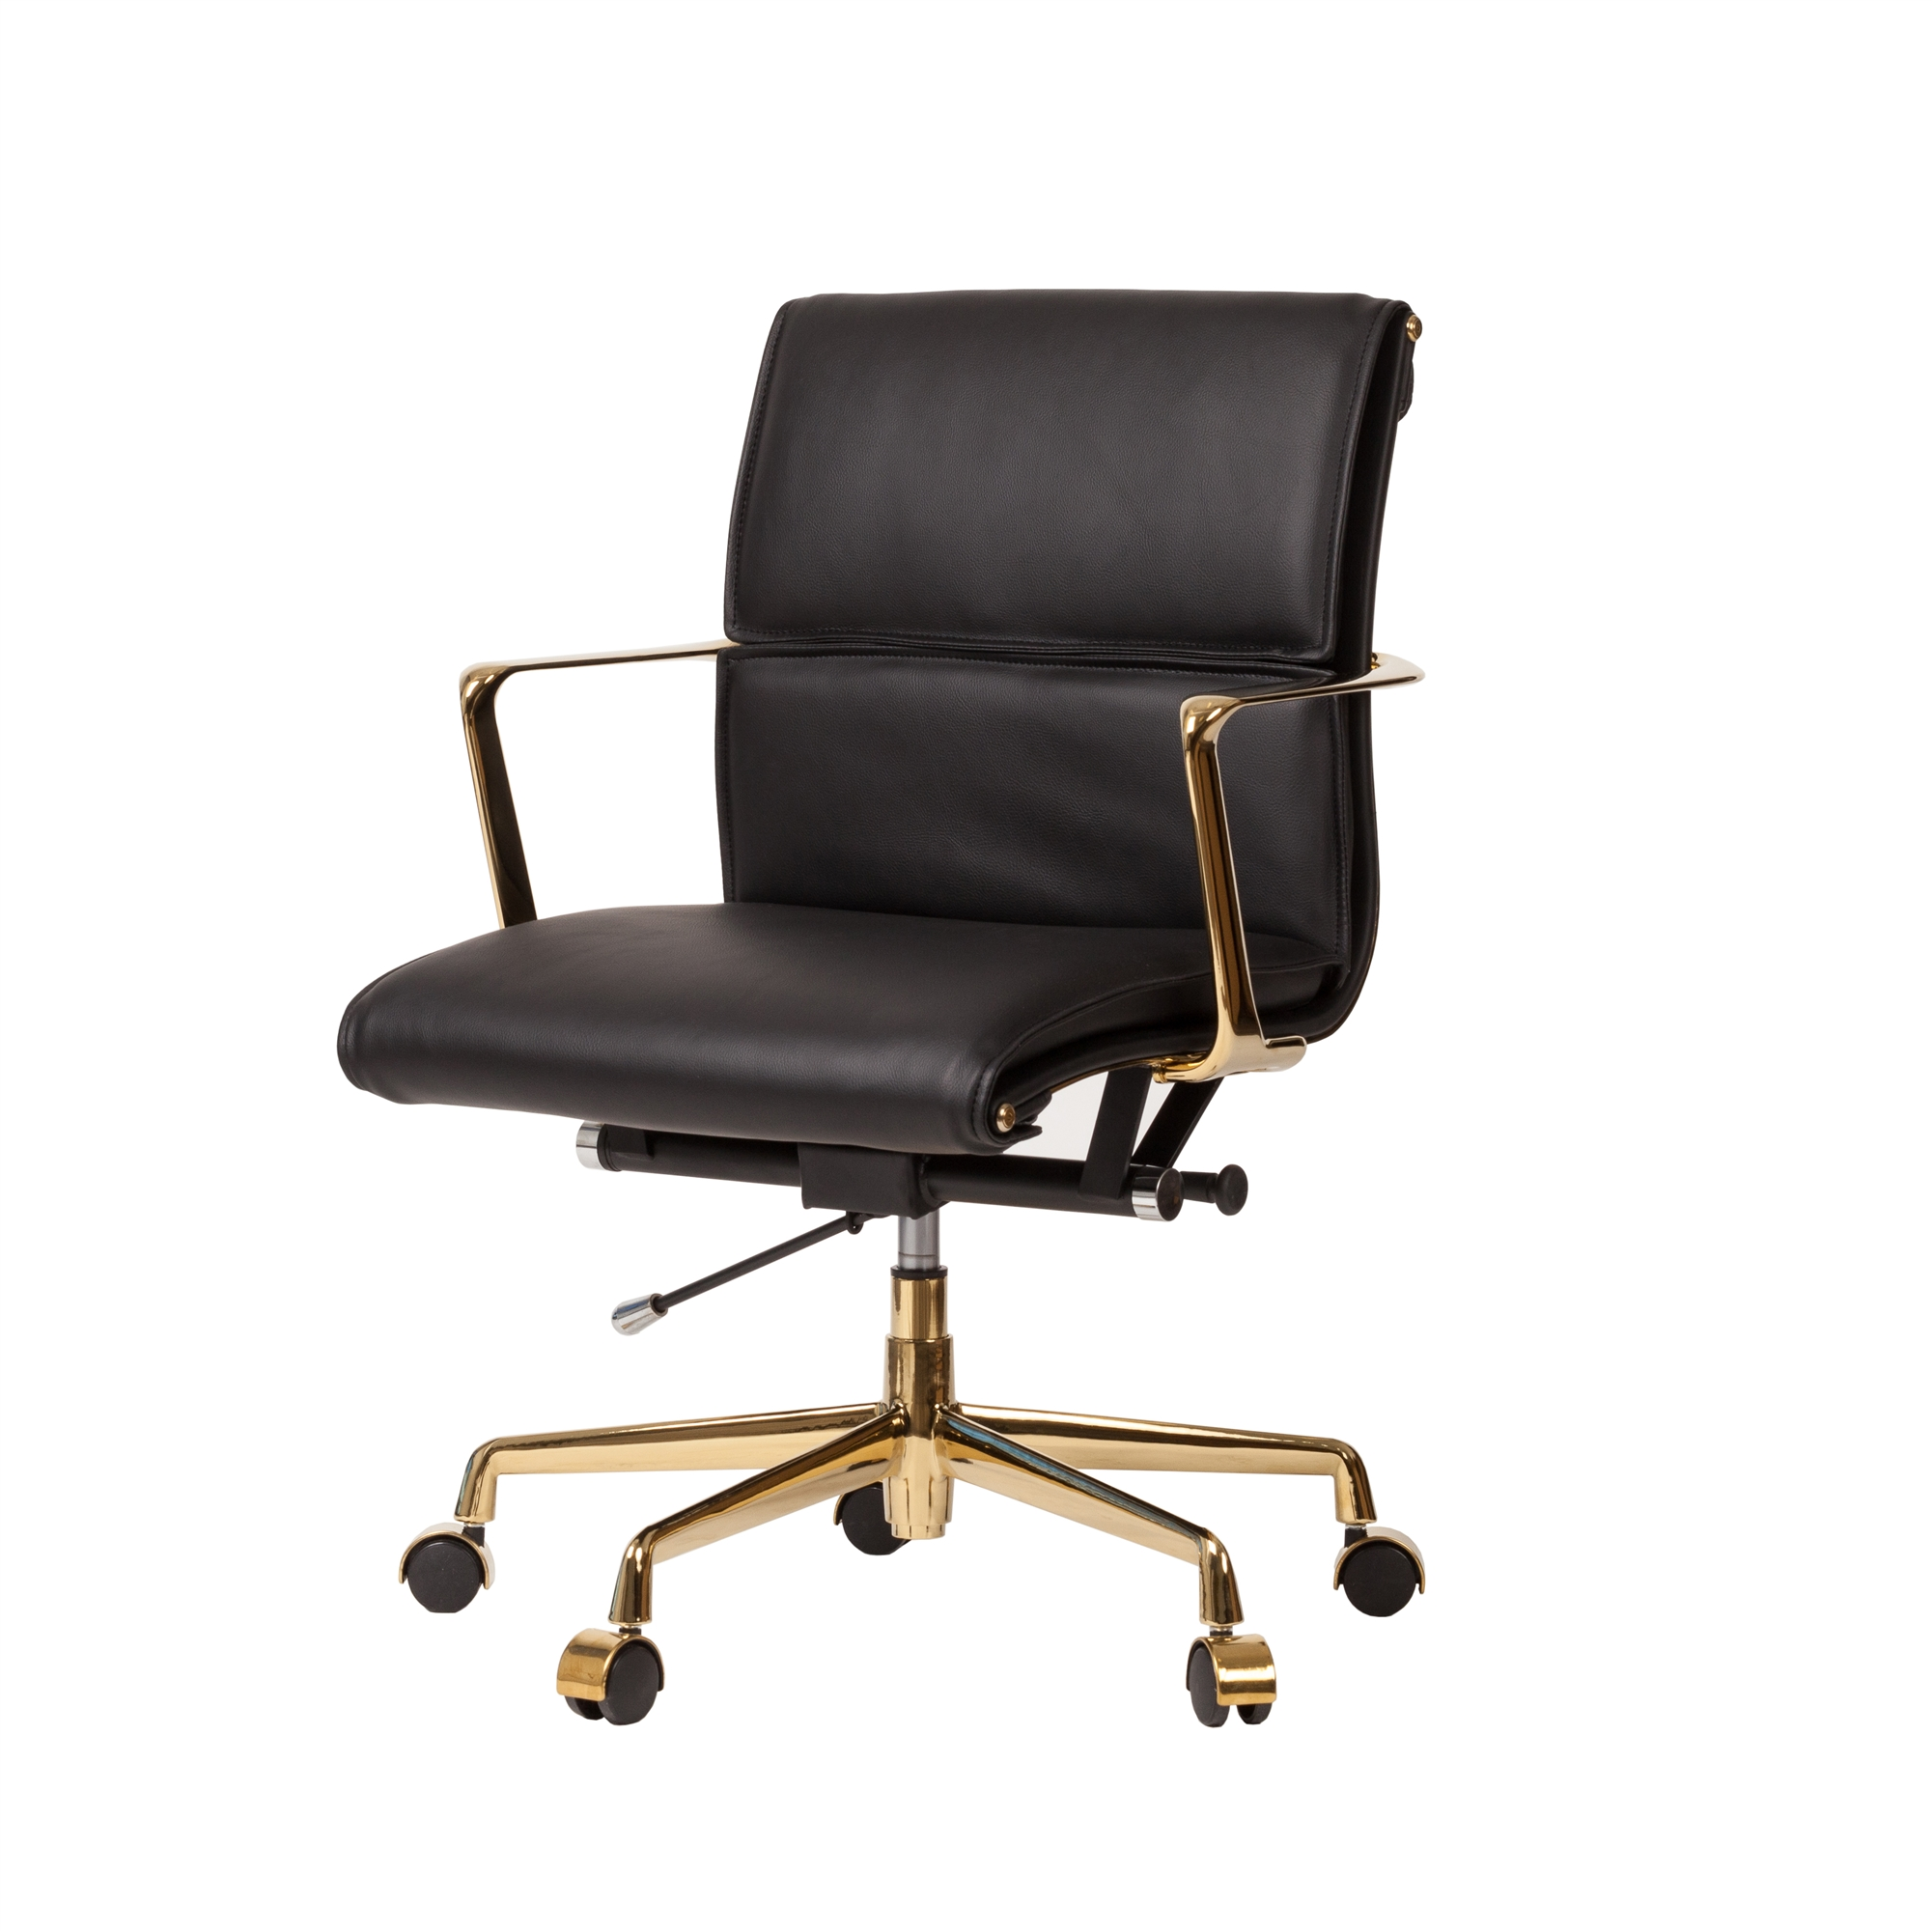 Mid Century Modern Office Chair In Black And Gold Ck The Khazana Home Austin Furniture Store